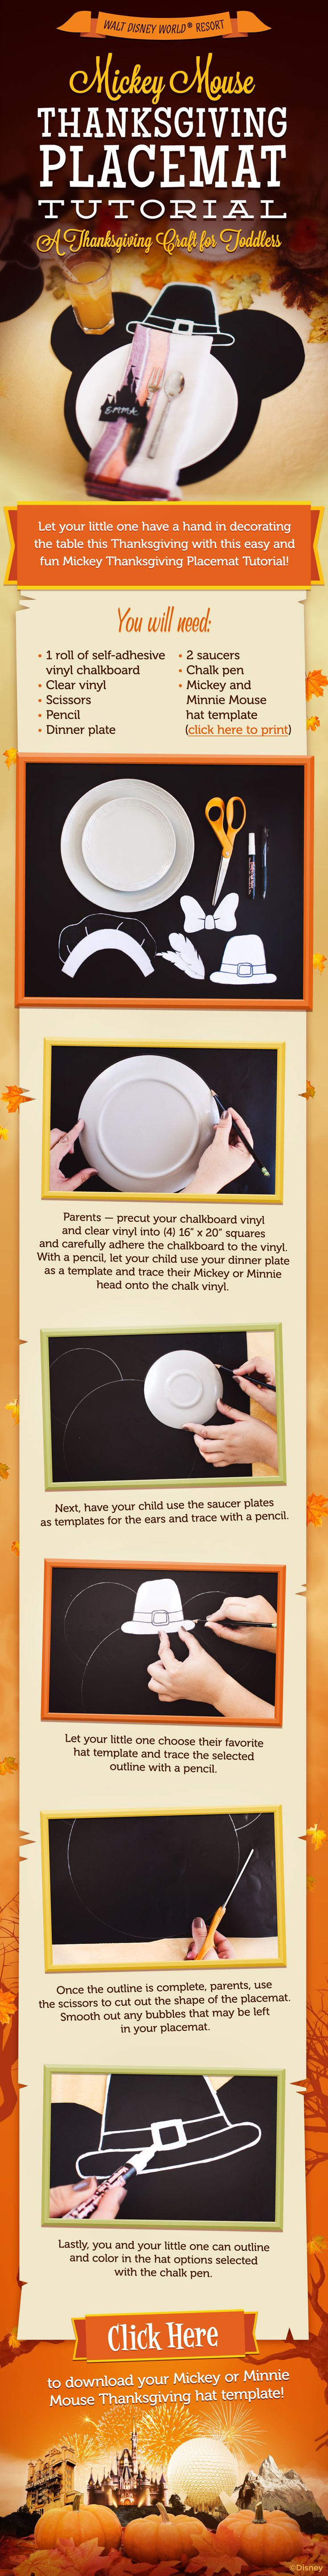 Mickey Mouse Thanksgiving Placemat Tutorial from Walt Disney World!